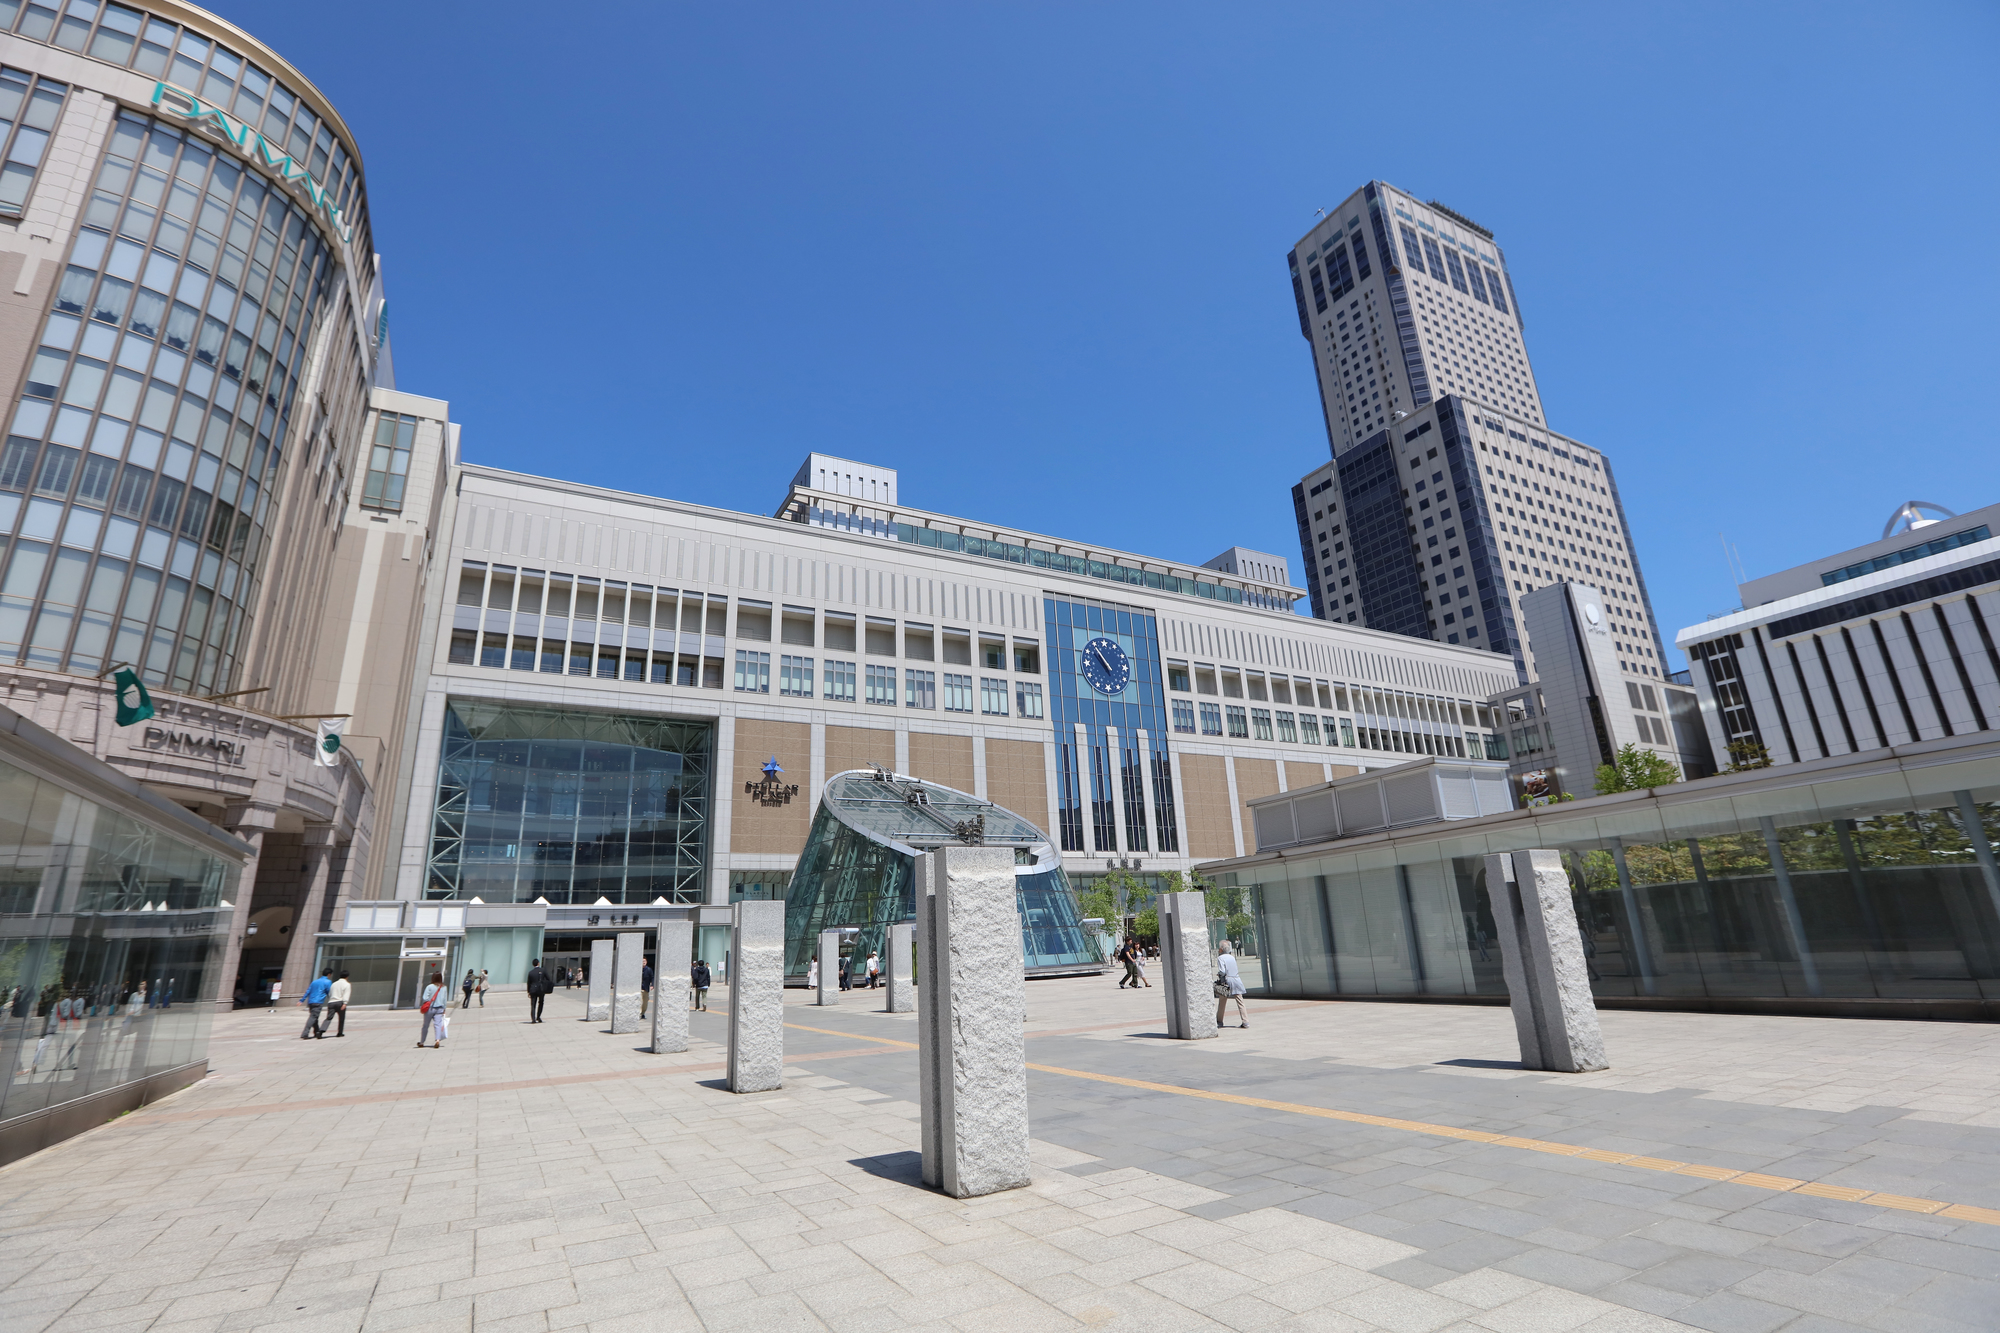 plaza of Overlook the city of Sapporo station